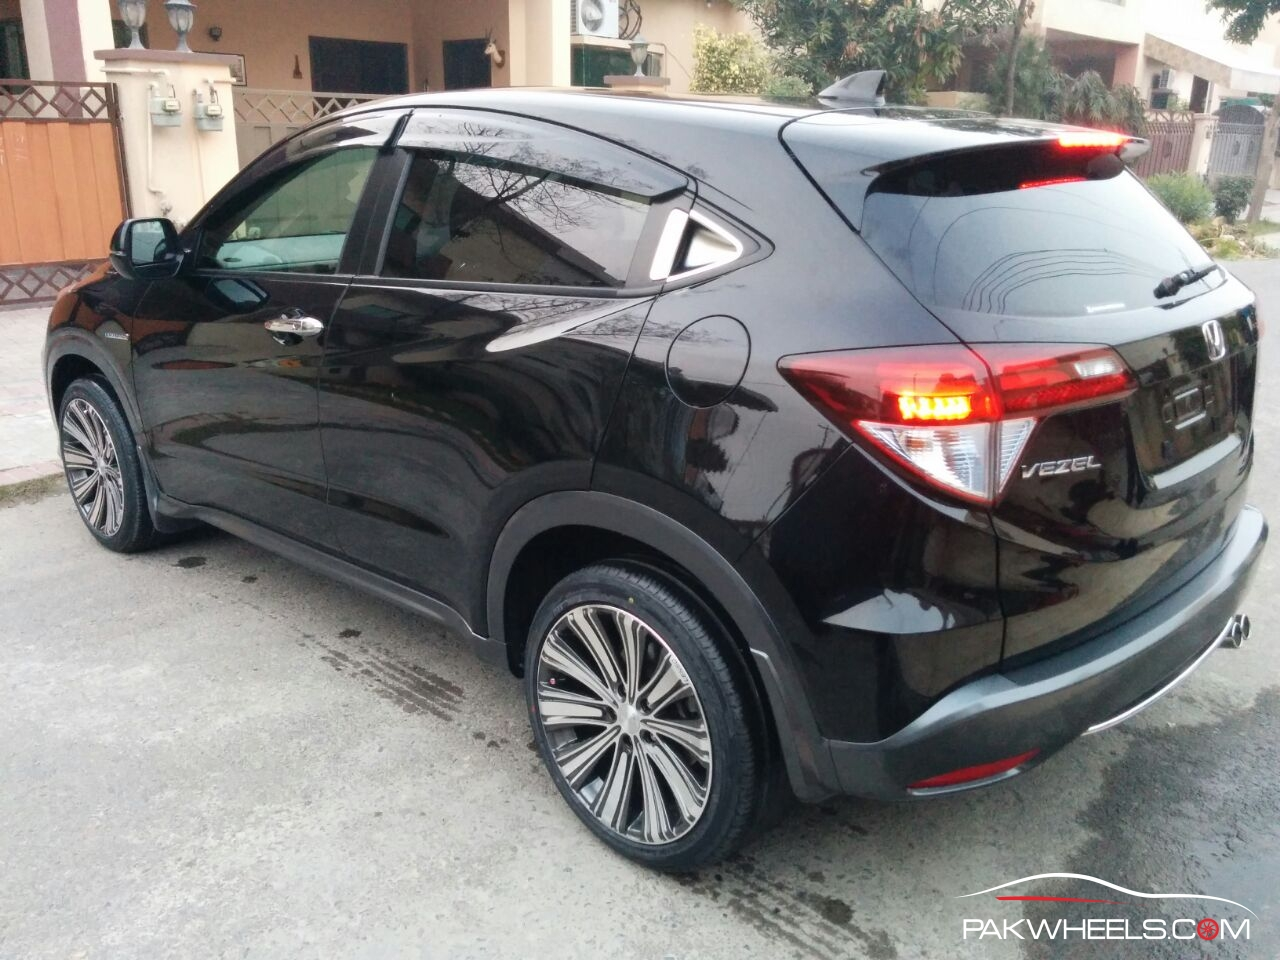 The Difference Between Honda Vezel and Honda HR-V Might Surprise You - PakWheels Blog